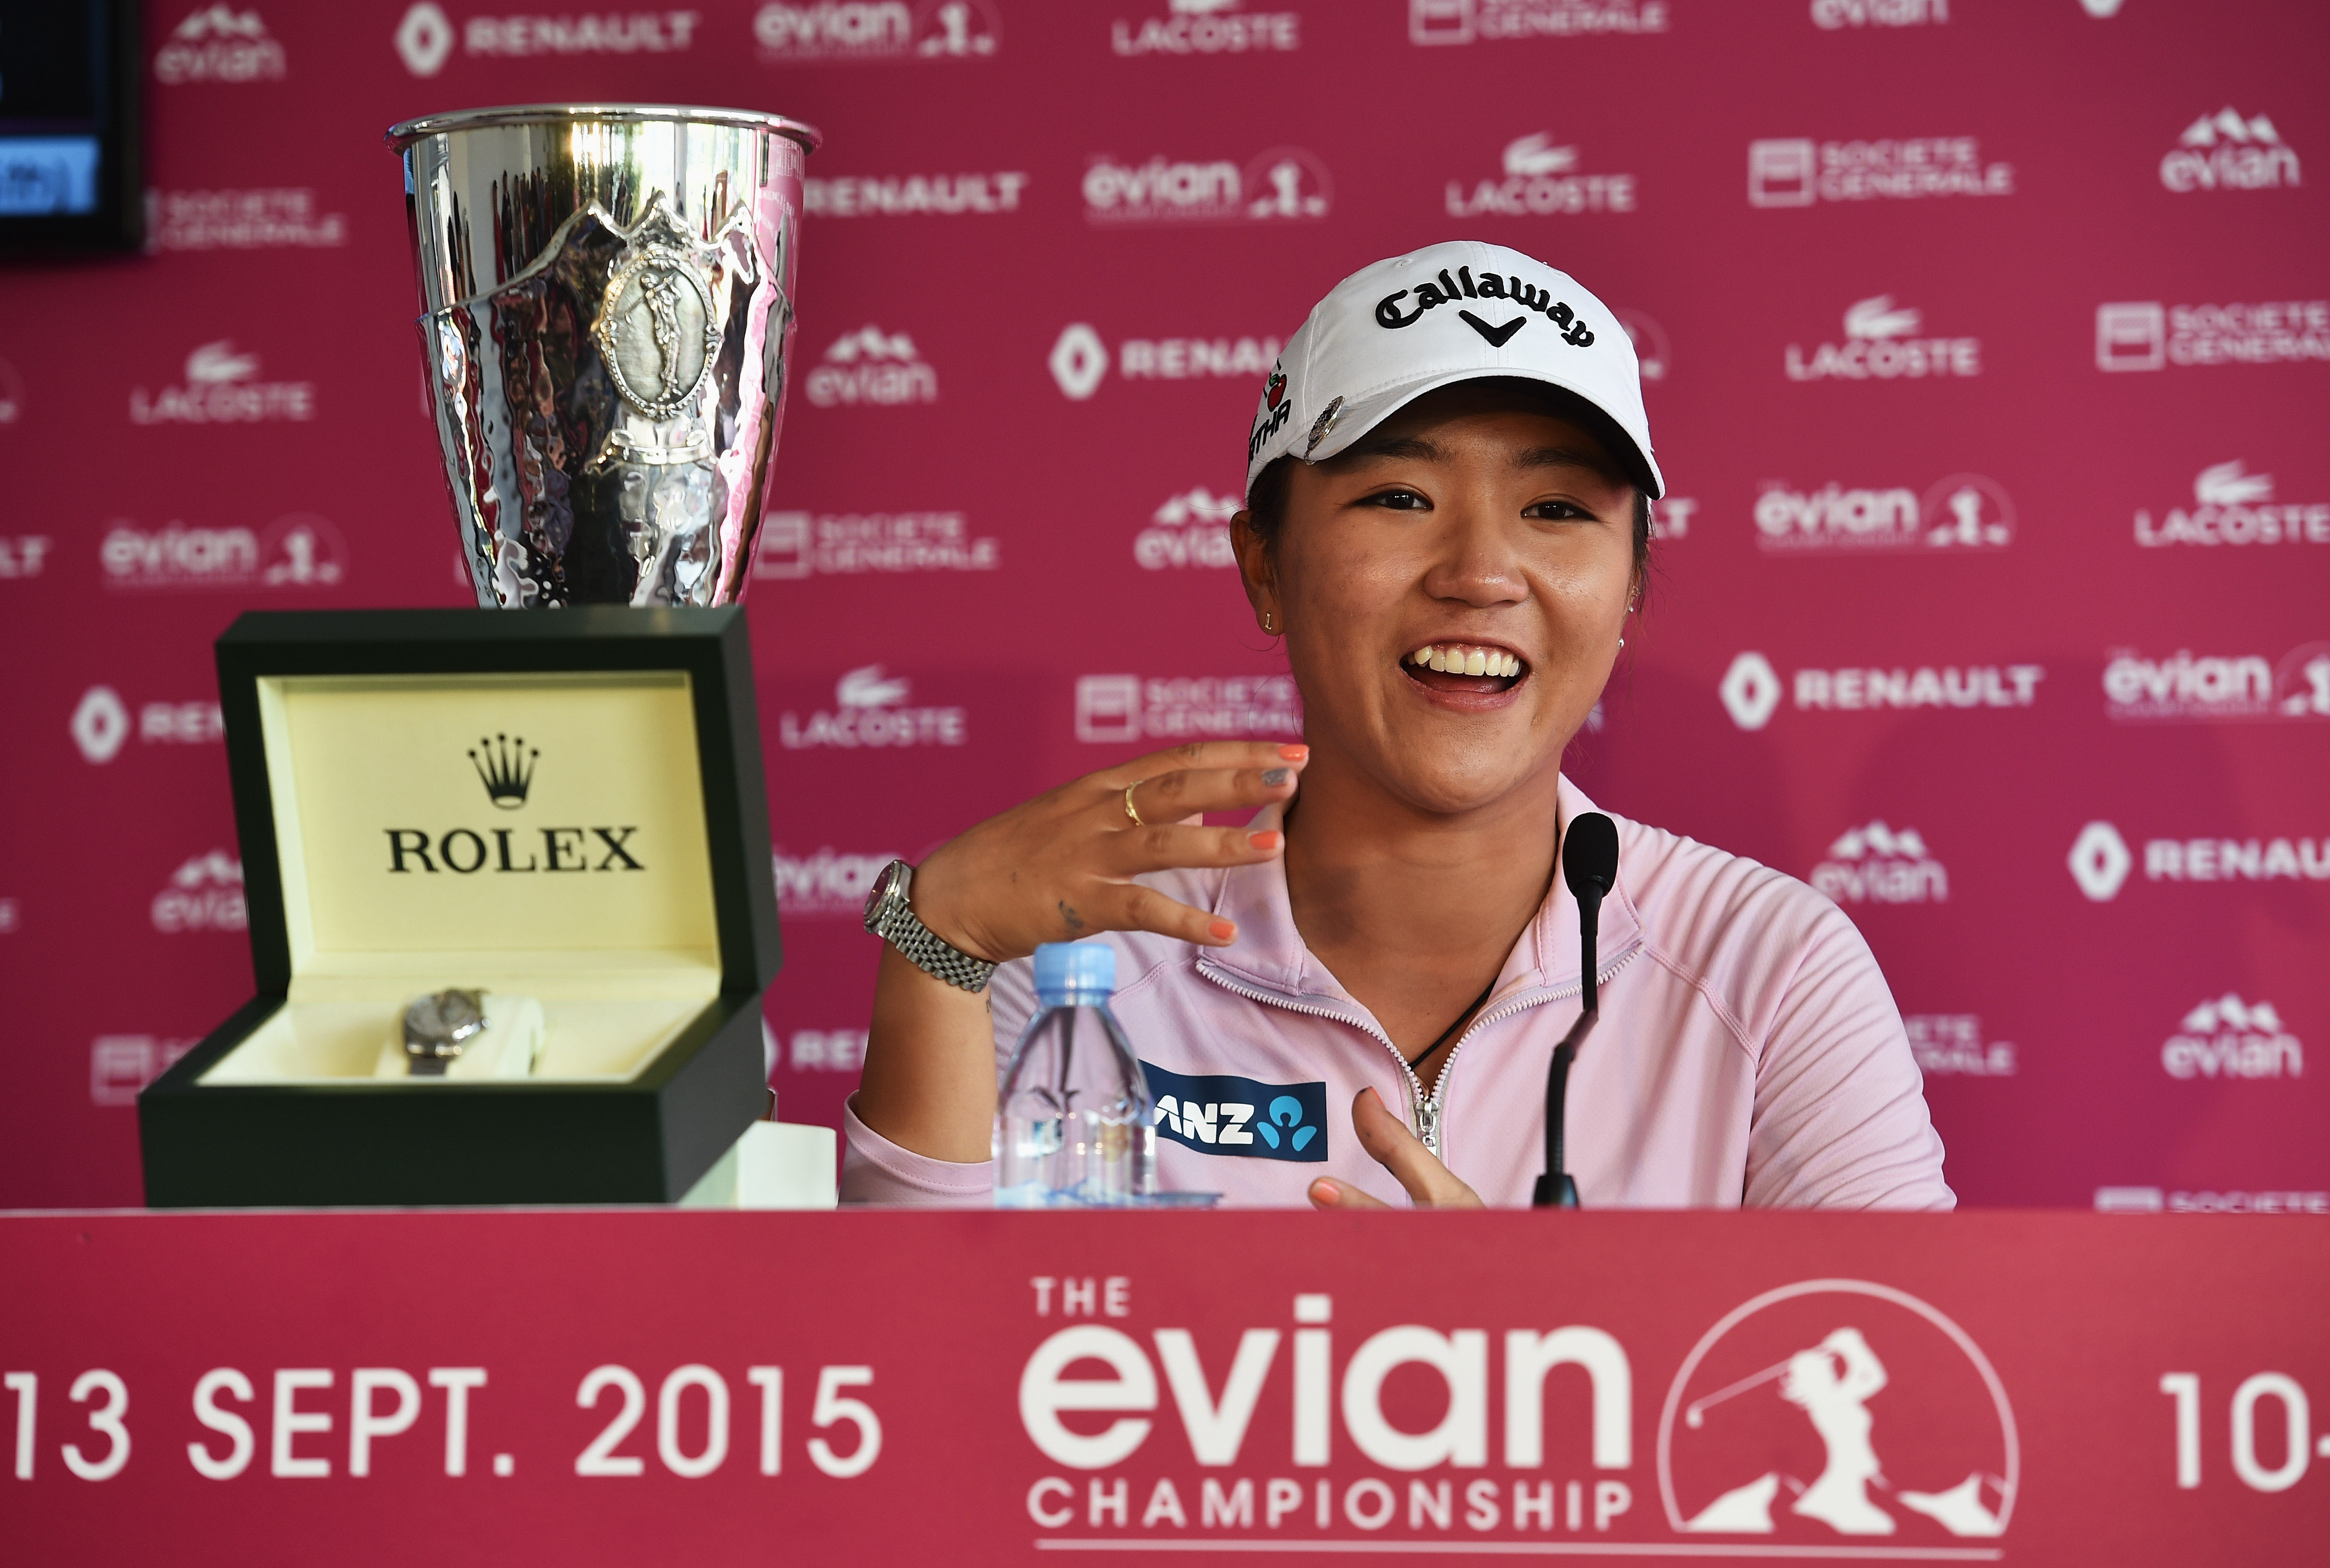 8. Lydia Ko wins her first major